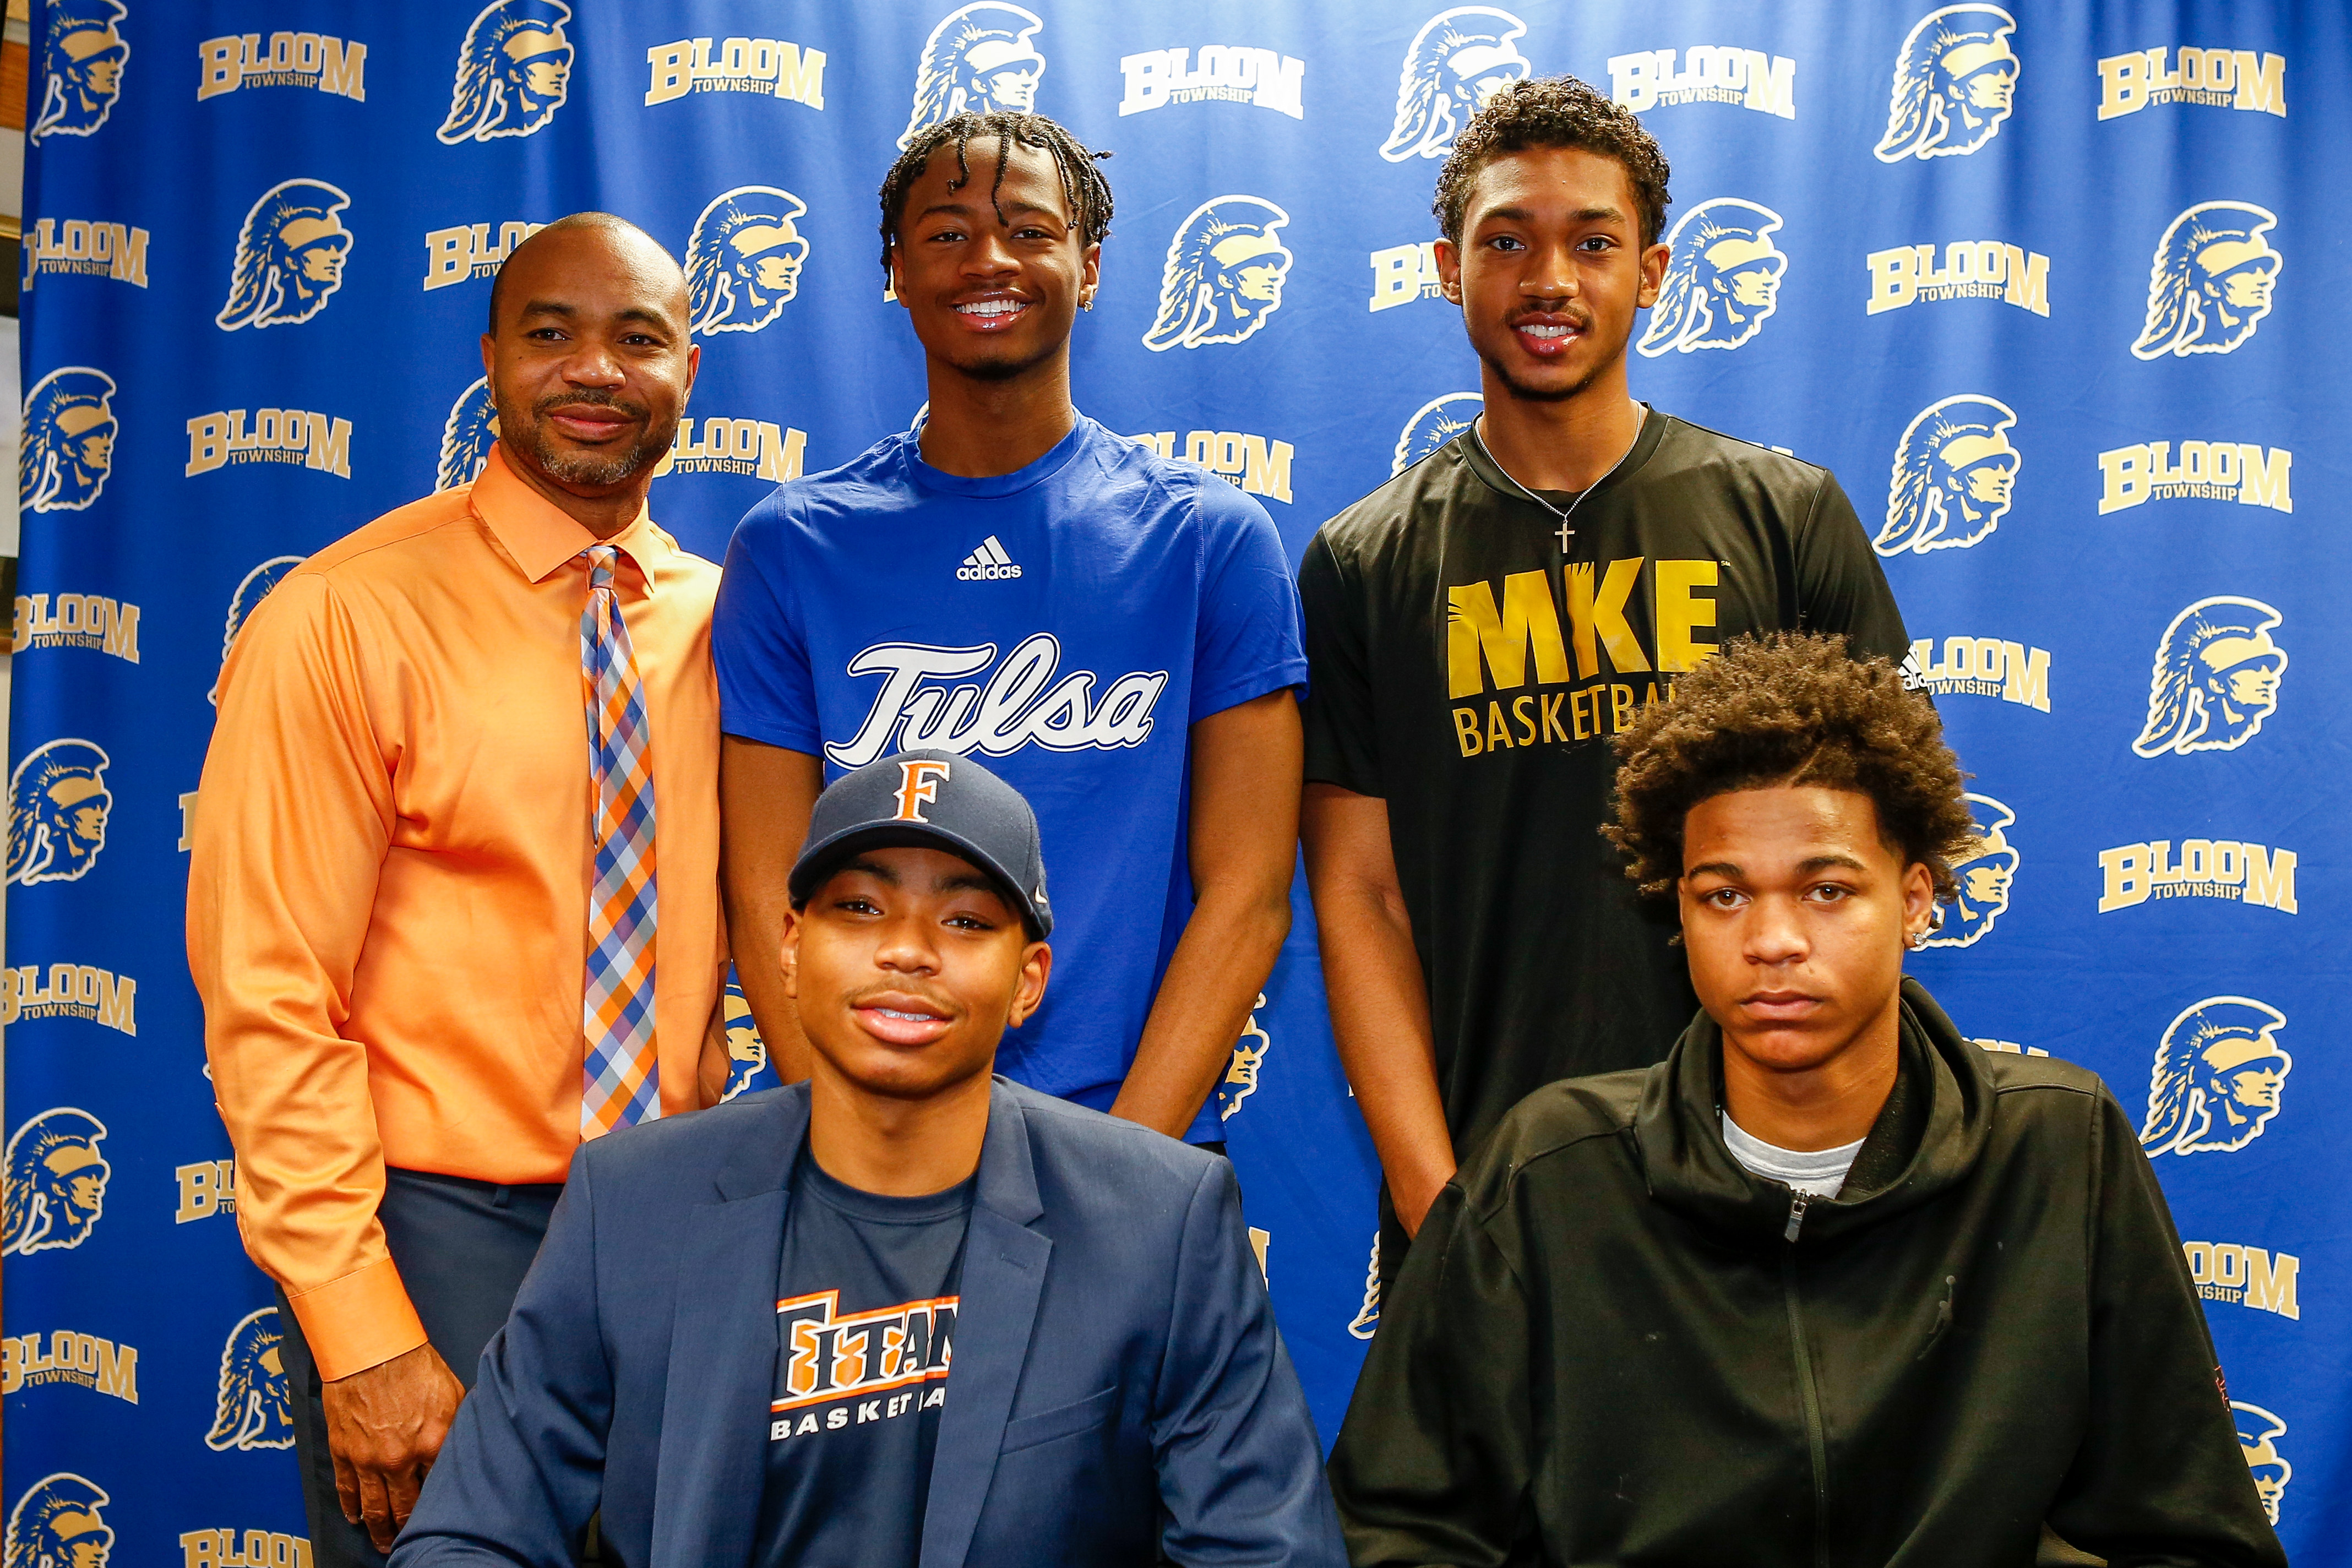 Bloom coach Dante Maddox Sr. with his son Dante Maddox Jr. (Cal State-Fullerton), Martice Mitchell (Minnesota), Donovan Newby (Wisconsin-Milwaukee) and Keshawn Williams (Tulsa) on signing day, November 12, 2019.